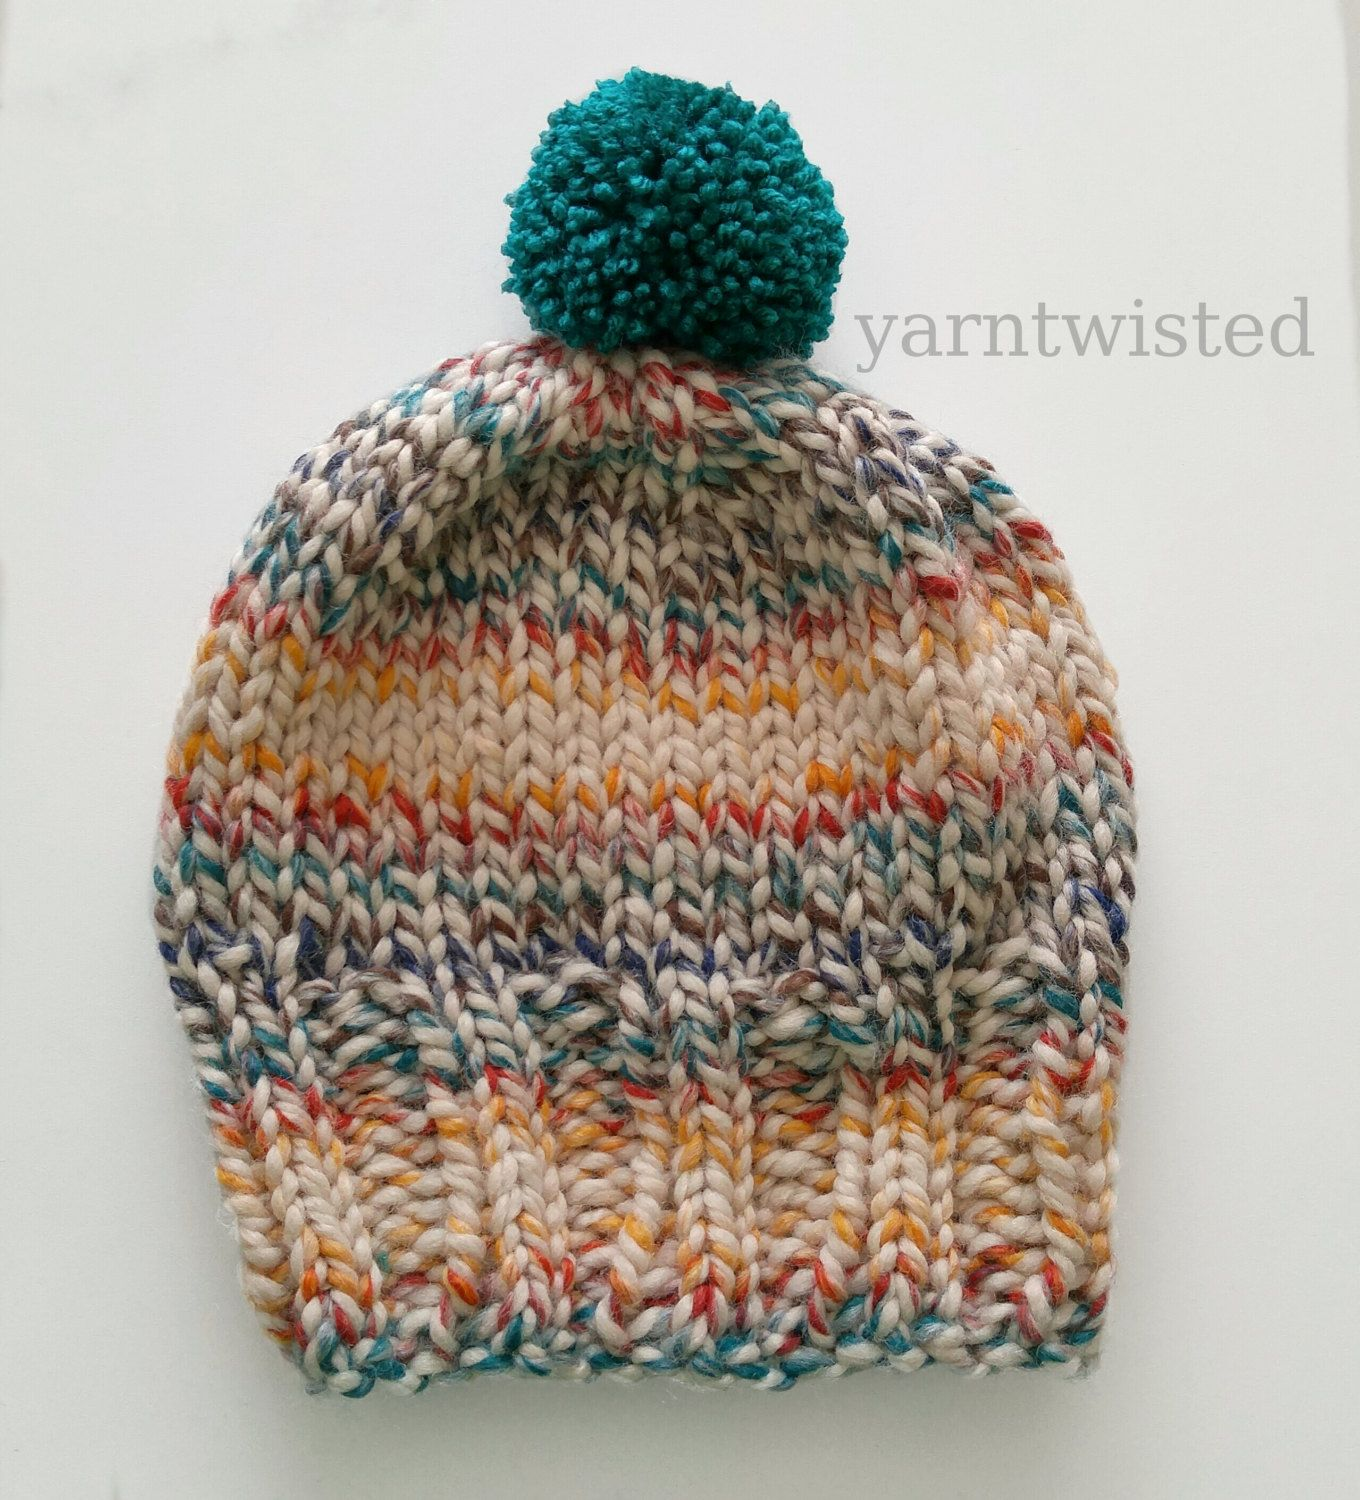 Chunky Striped Pom Pom Women's Knit Hat, Fall 2015, Back to School, Hat for Teens, Winter Hat Ski Beanie by yarntwisted on Etsy